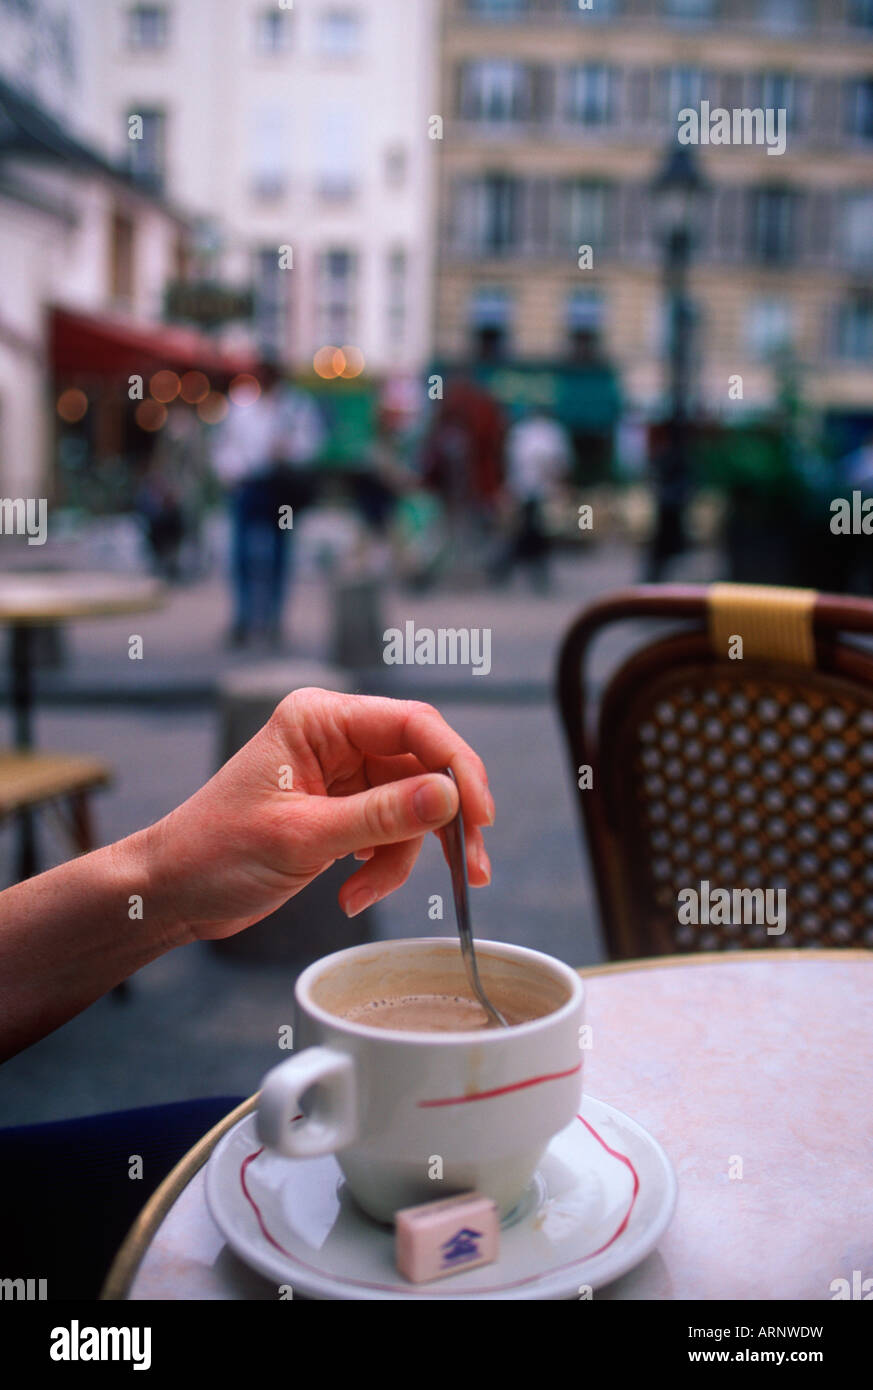 France, Paris, cafe with woman's hand stirring coffee - Stock Image